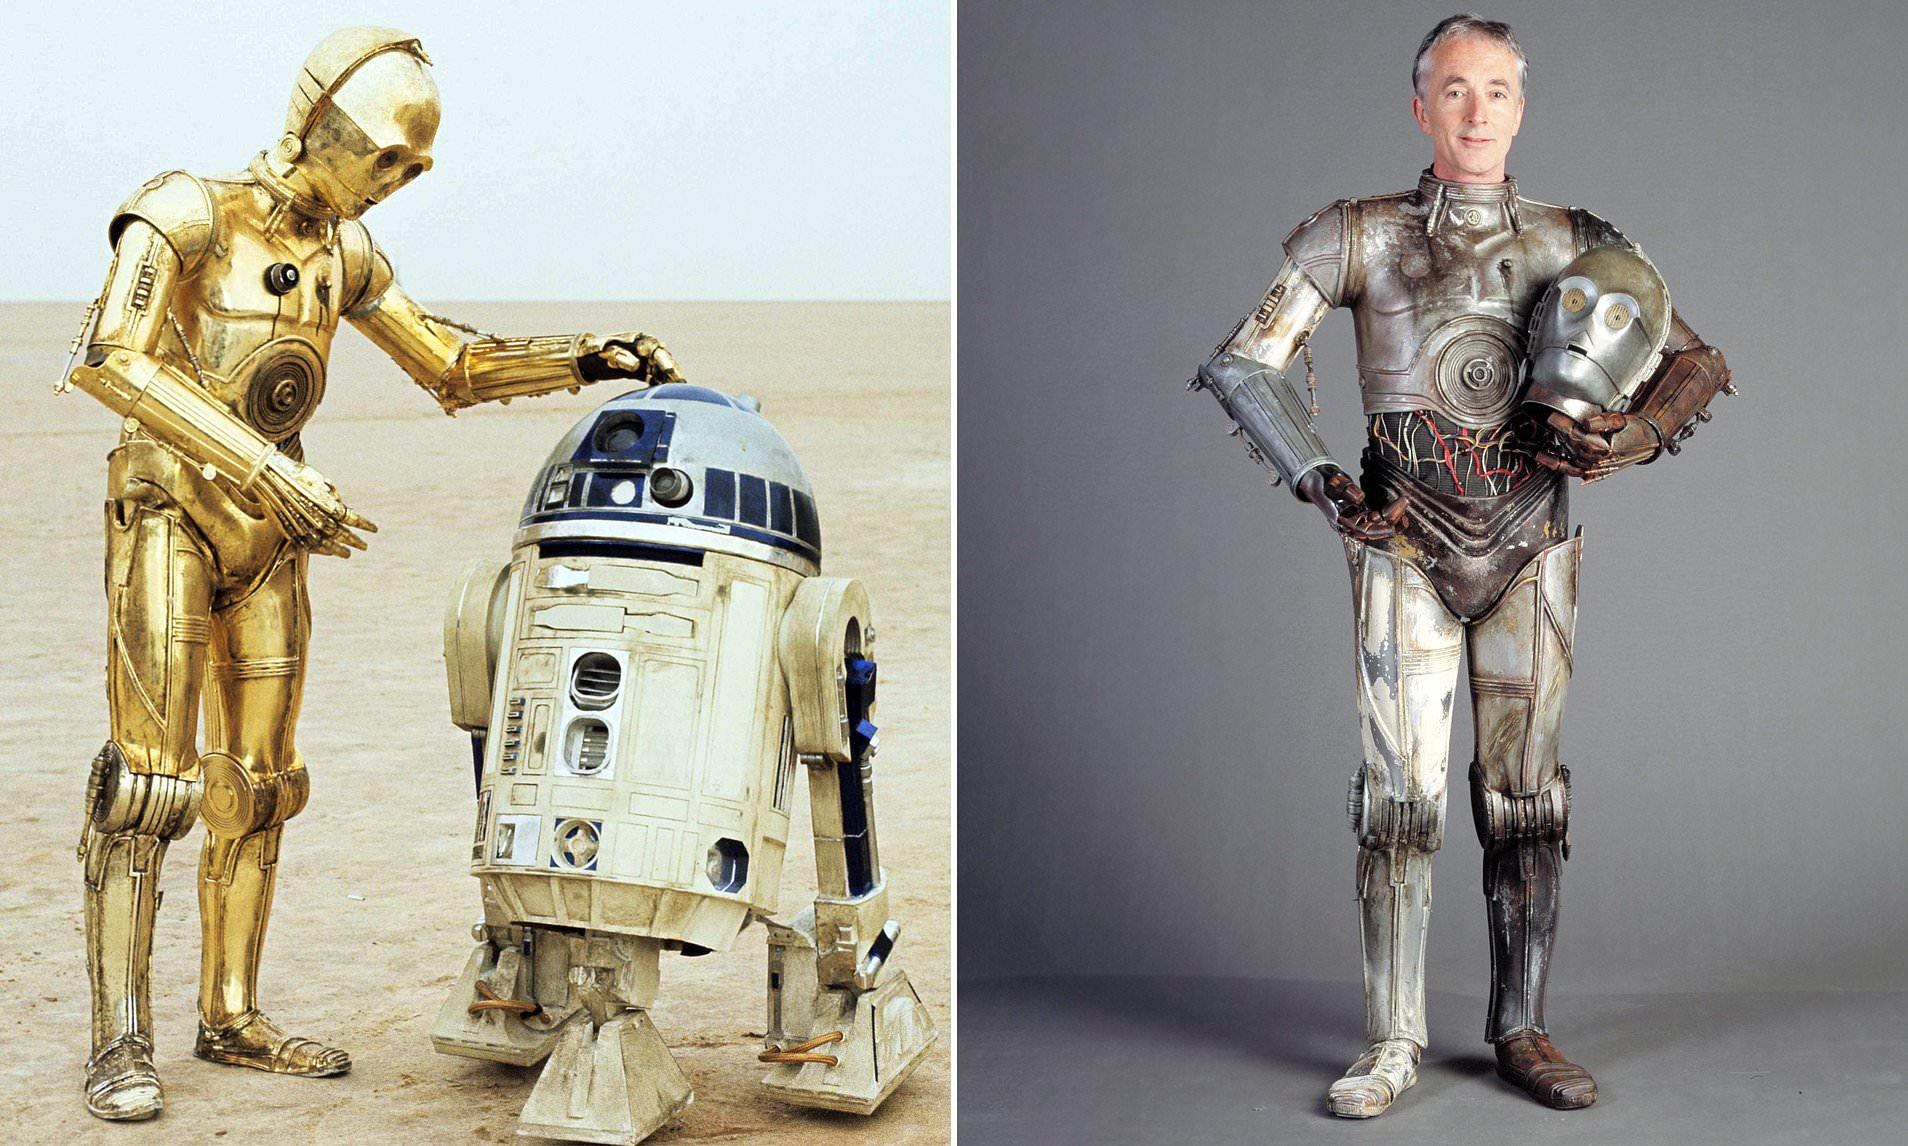 C-3PO Actor Anthony Daniels Confirms Zero Intention of Retiring from Star Wars